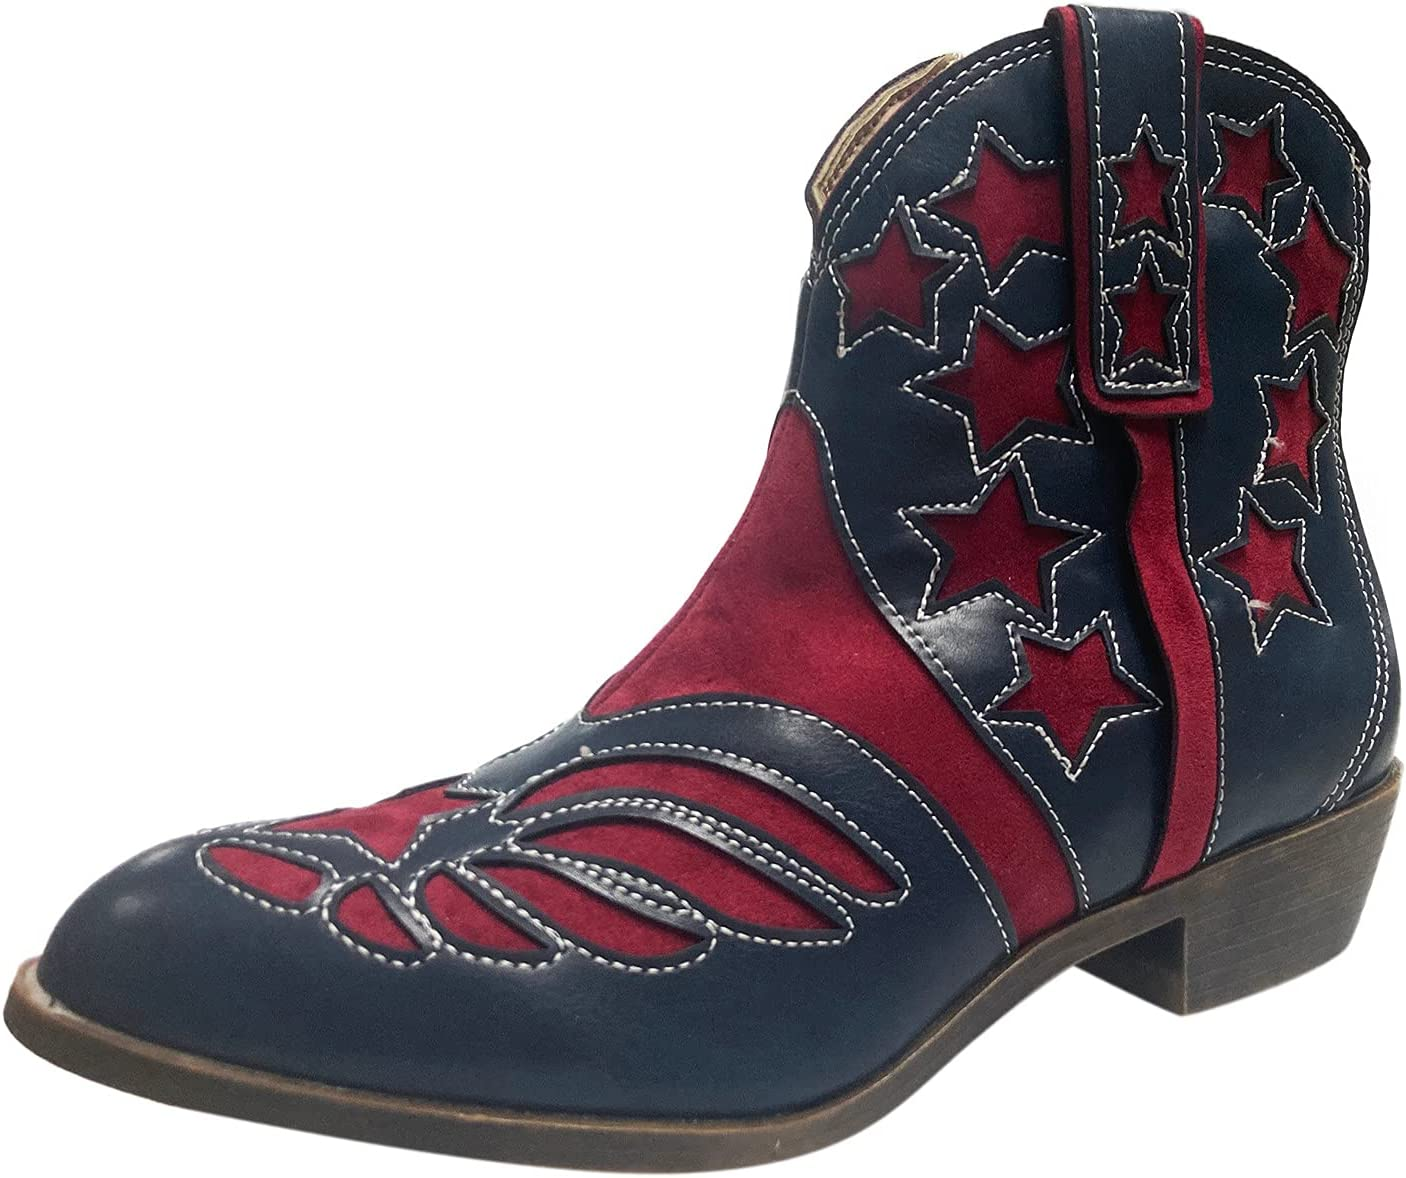 TIANMING security Cowboy Ankle Boots for Women Toe Cowgirl Very popular Point We Short